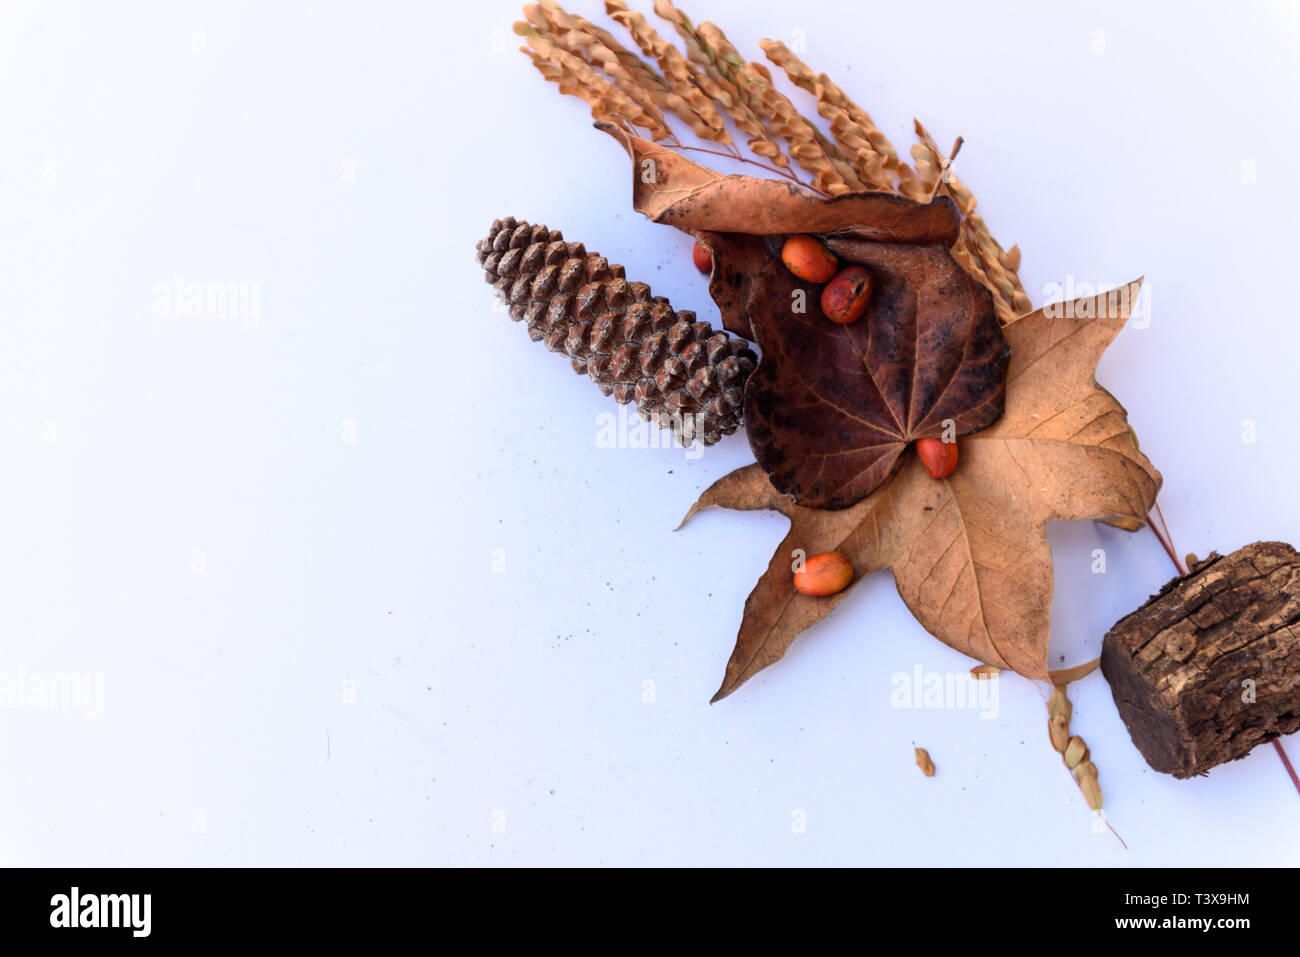 Botanical still life of leaves, pine cones, plants and berries in brown tones against white background. Stock Photo